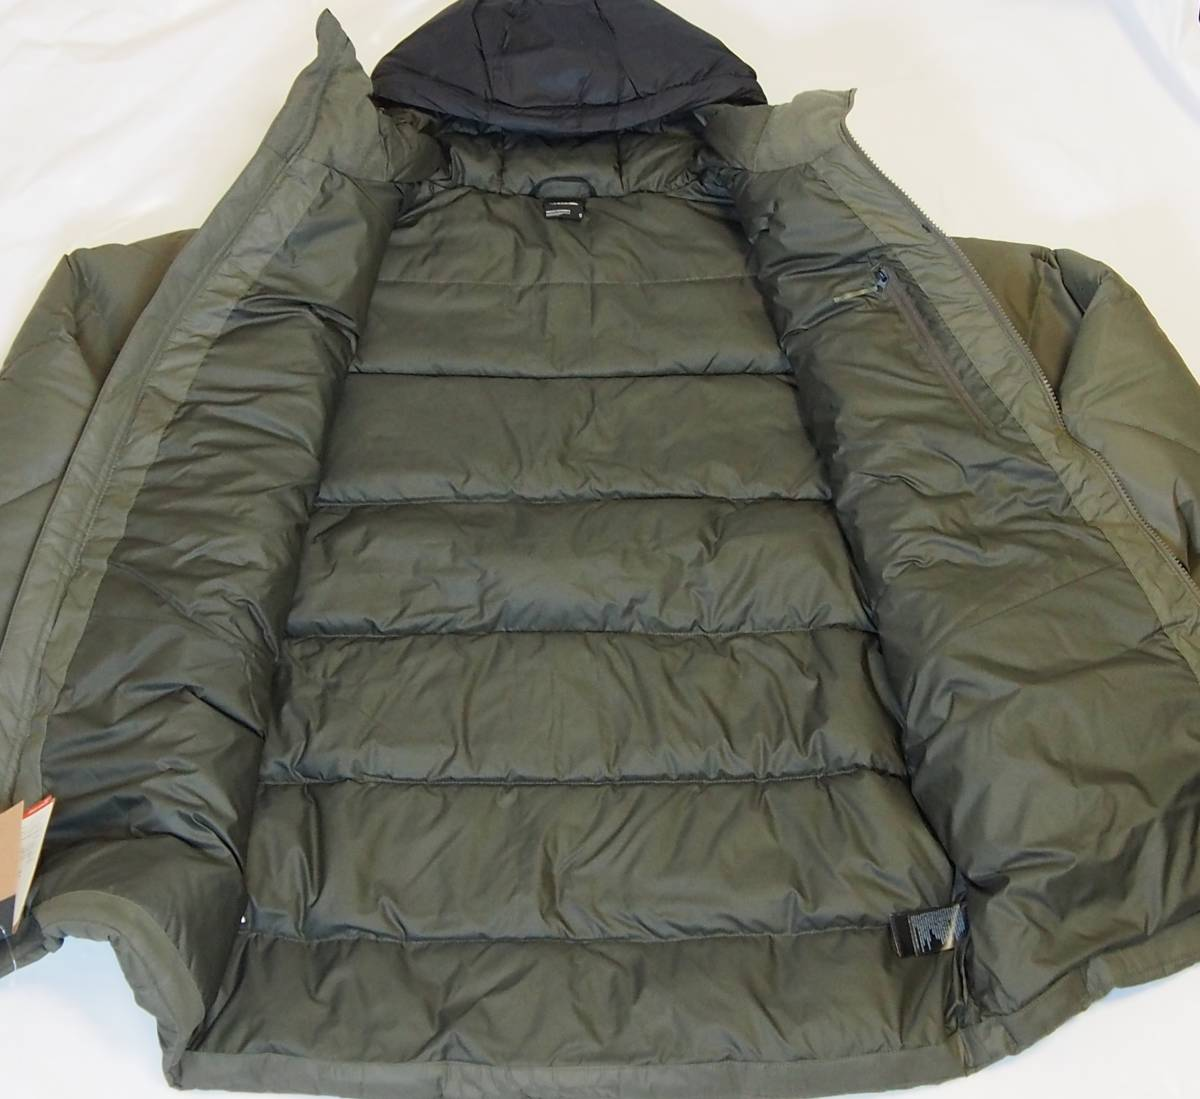 【USA購入、未使用タグ付】ノースフェイス UX ダウンジャケット M グリーン The North Face UX Down Parka TNF BLACK/NEW TAUPE GREEN_画像5